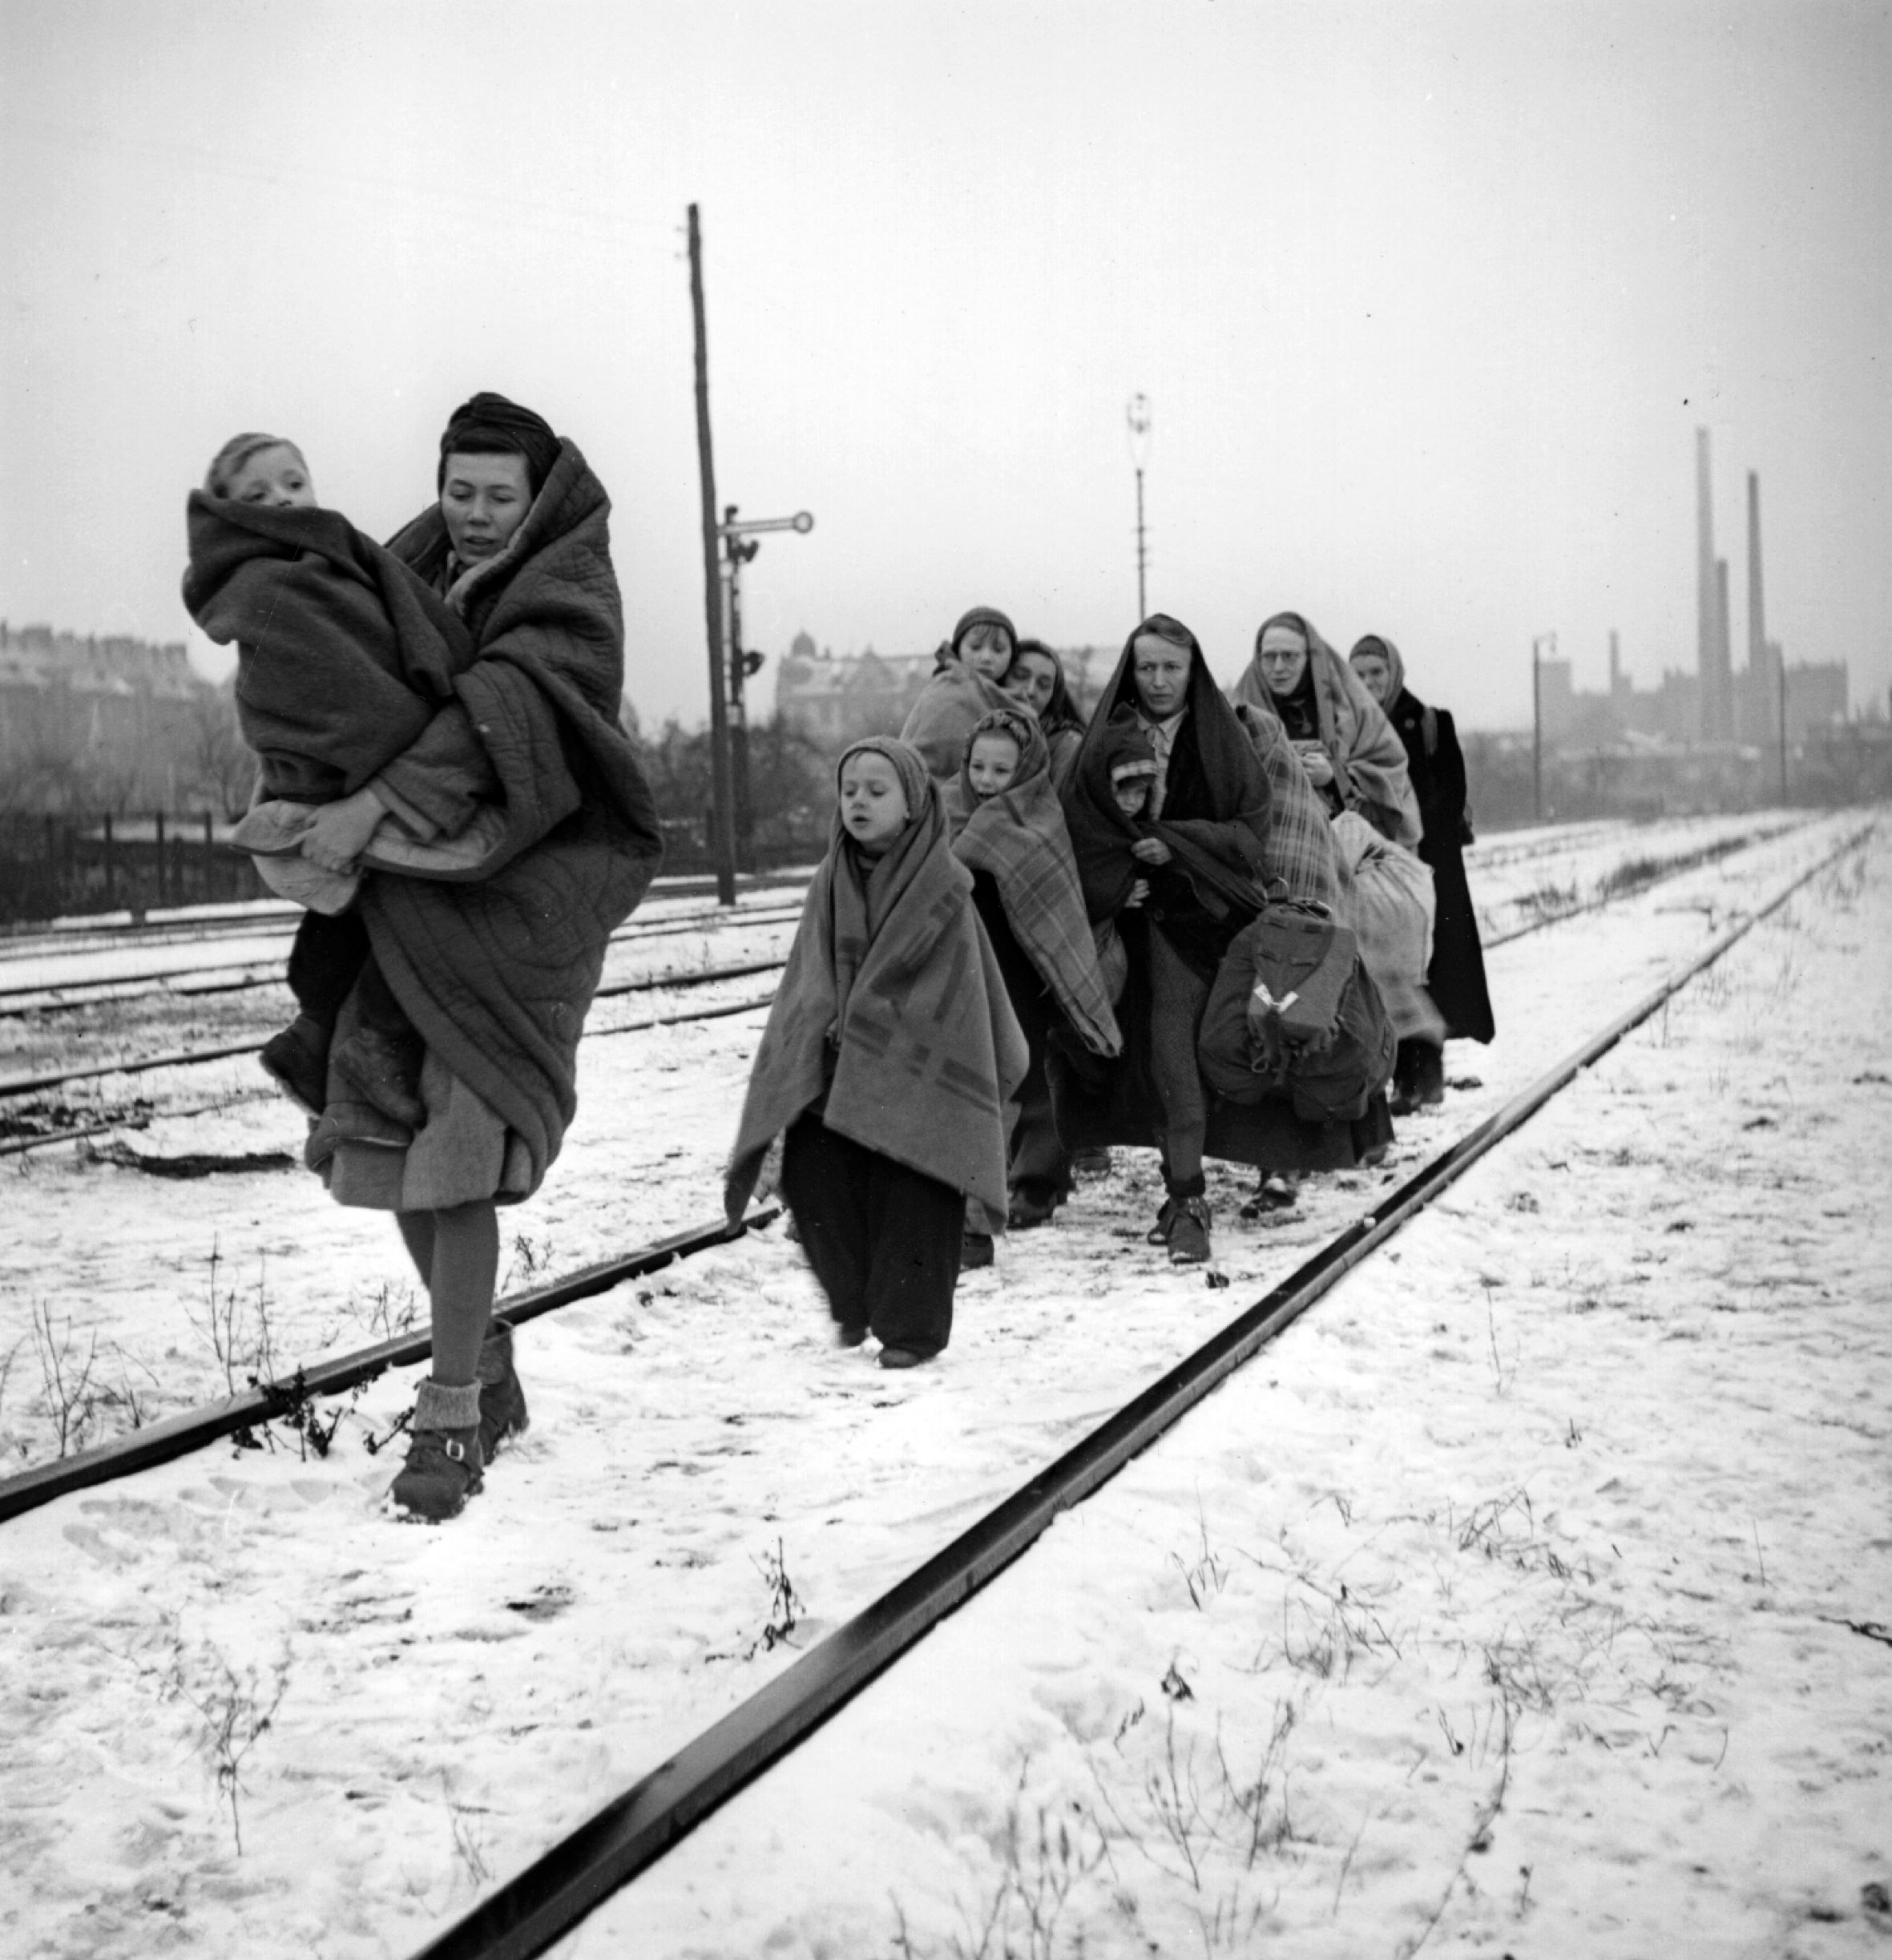 In 1945, a handful of survivors remain of the 150 refugees who left Lodz in Poland two months earlier, headed for Berlin. They follow railway lines in the hope of being picked up by a British train.